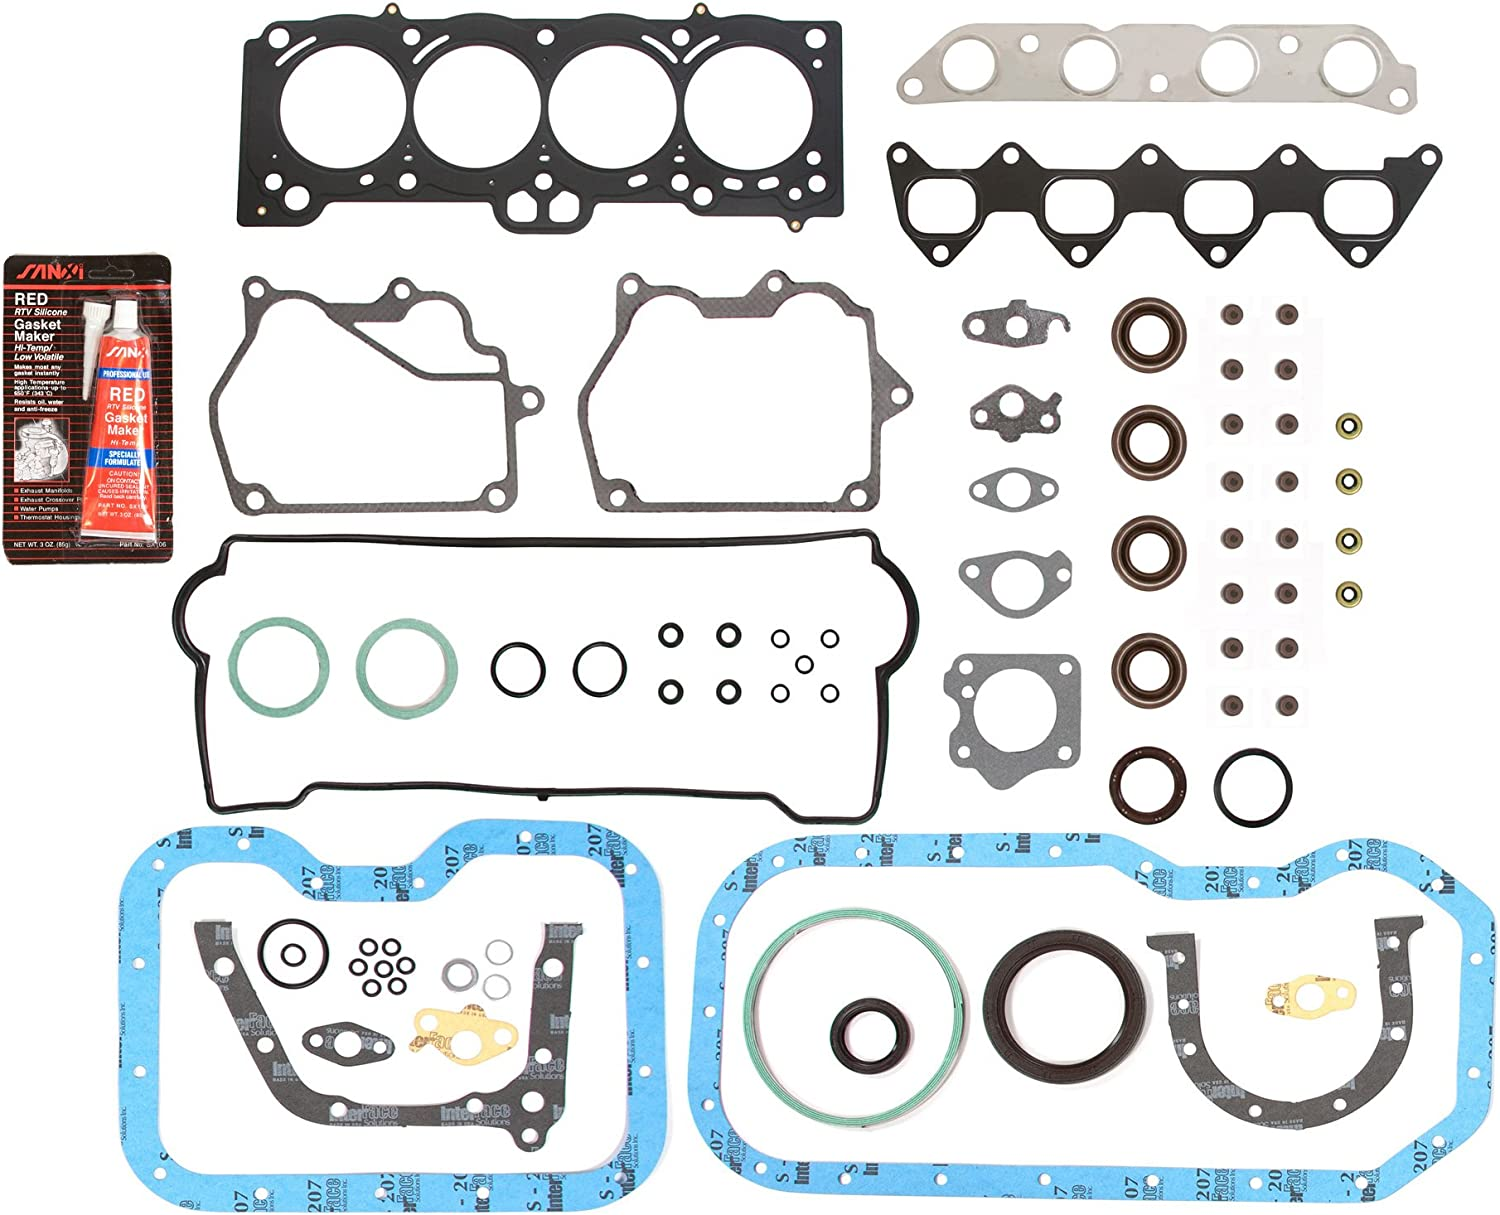 0.010 Oversize Main Rod Bearings Domestic Gaskets Engine Rering Kit FSBRR2015\2\1\1 Fits 93-97 Toyota Celica Corolla Geo 1.8 DOHC 7AFE Full Gasket Set 0.50mm 0.25mm 0.020 Oversize Piston Rings